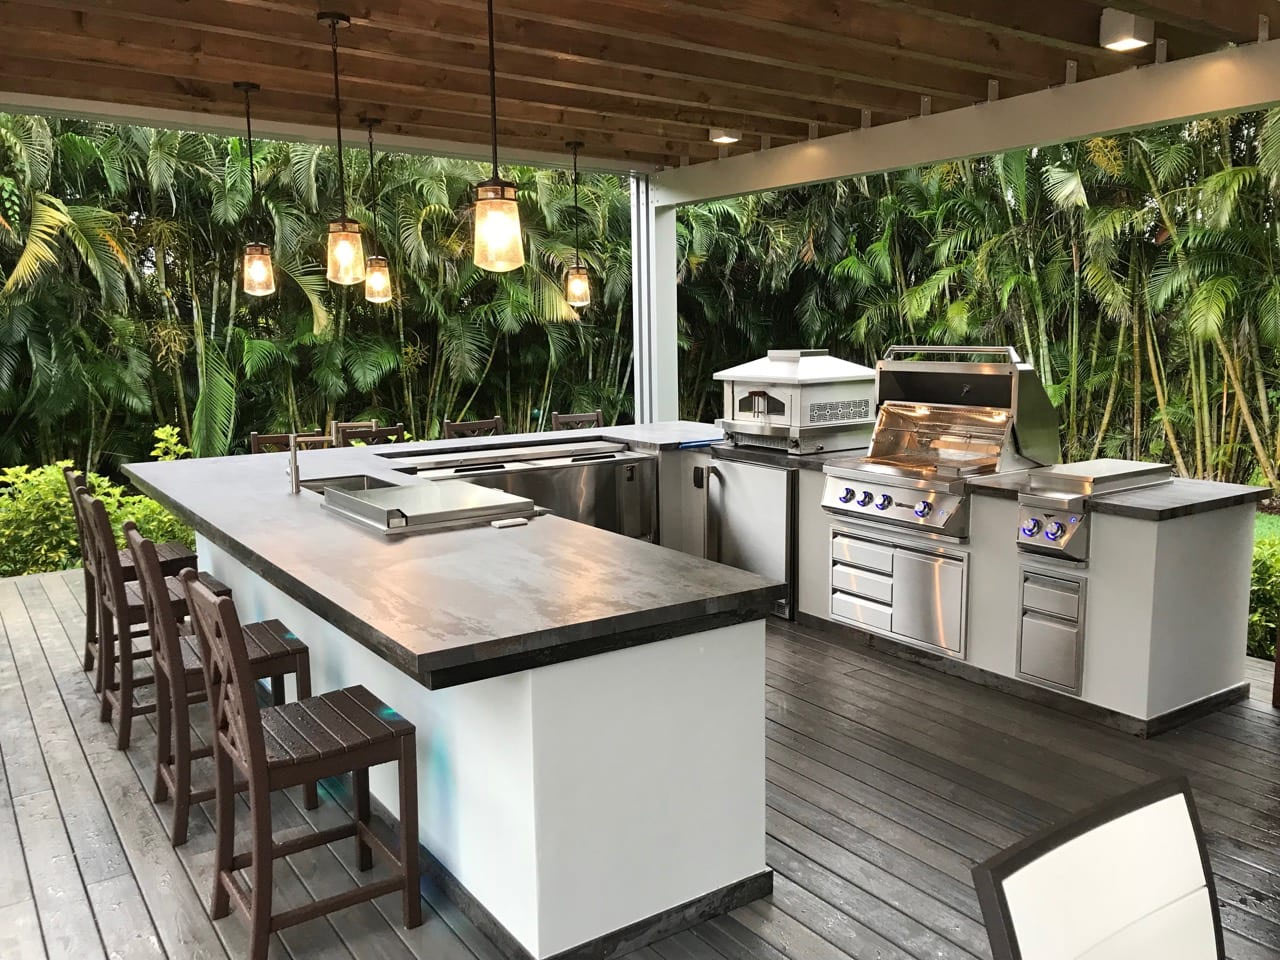 Countertop Options For Your Outdoor Kitchen Riostones